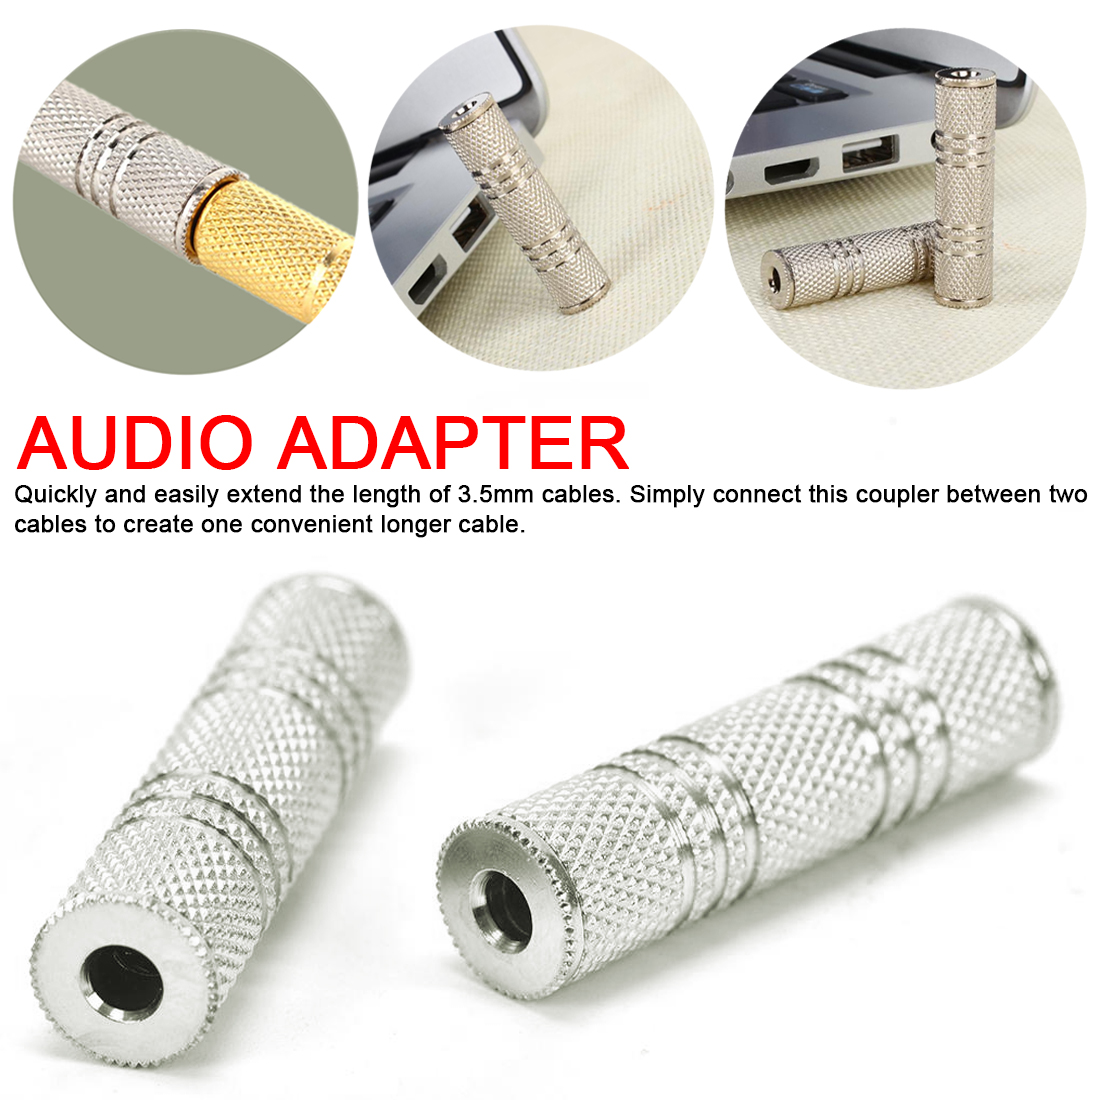 Headphone Jack Cables 3.5mm Female To Female Audio Adapter Connector Coupler Stereo F/F Extension